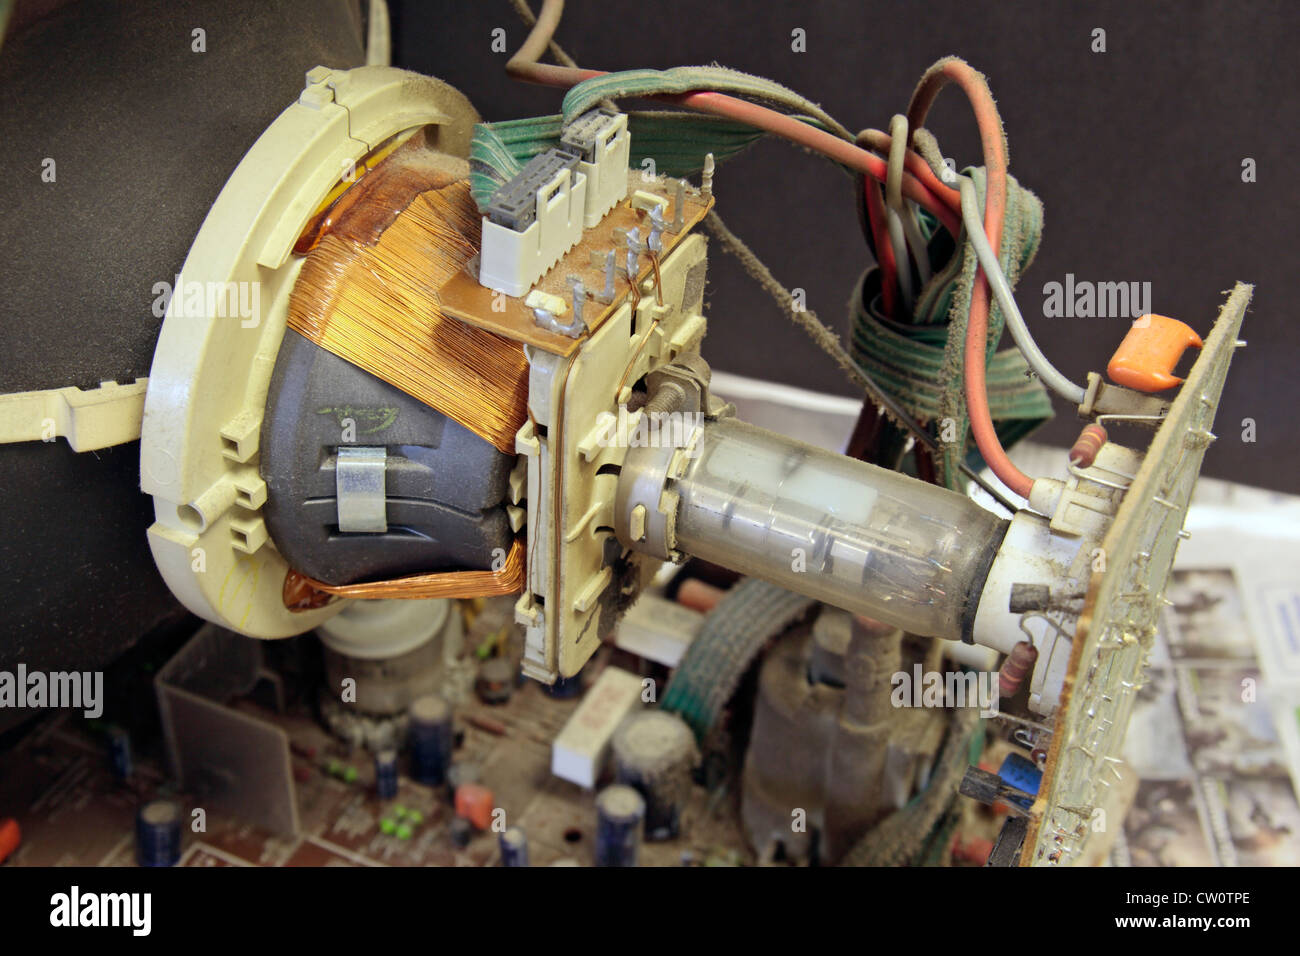 Close up view of the vacuum tube, electron gun and general wiring of an analogue cathode ray tube portable television. - Stock Image